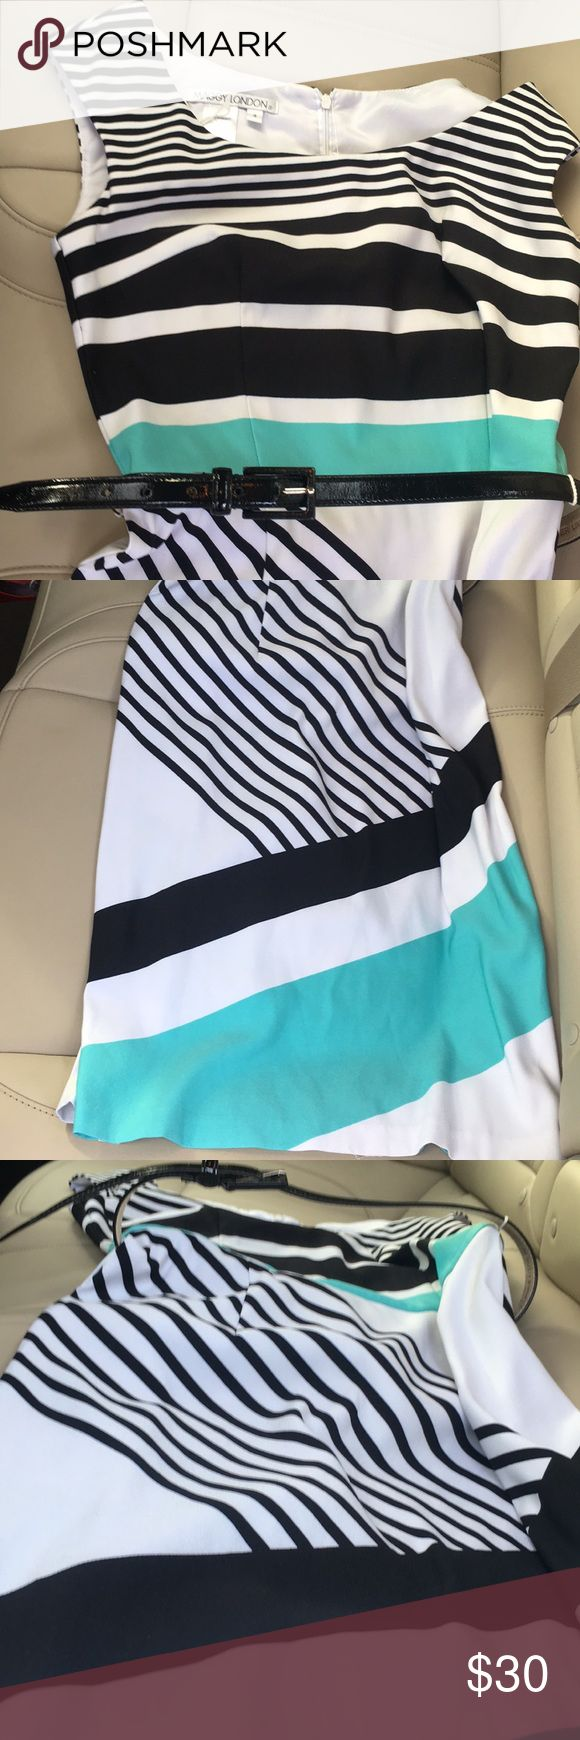 Maggy London Dress Like new. No flaws. White colored with black and blue stripes. Belted. Fits true to size. Maggy London Dresses